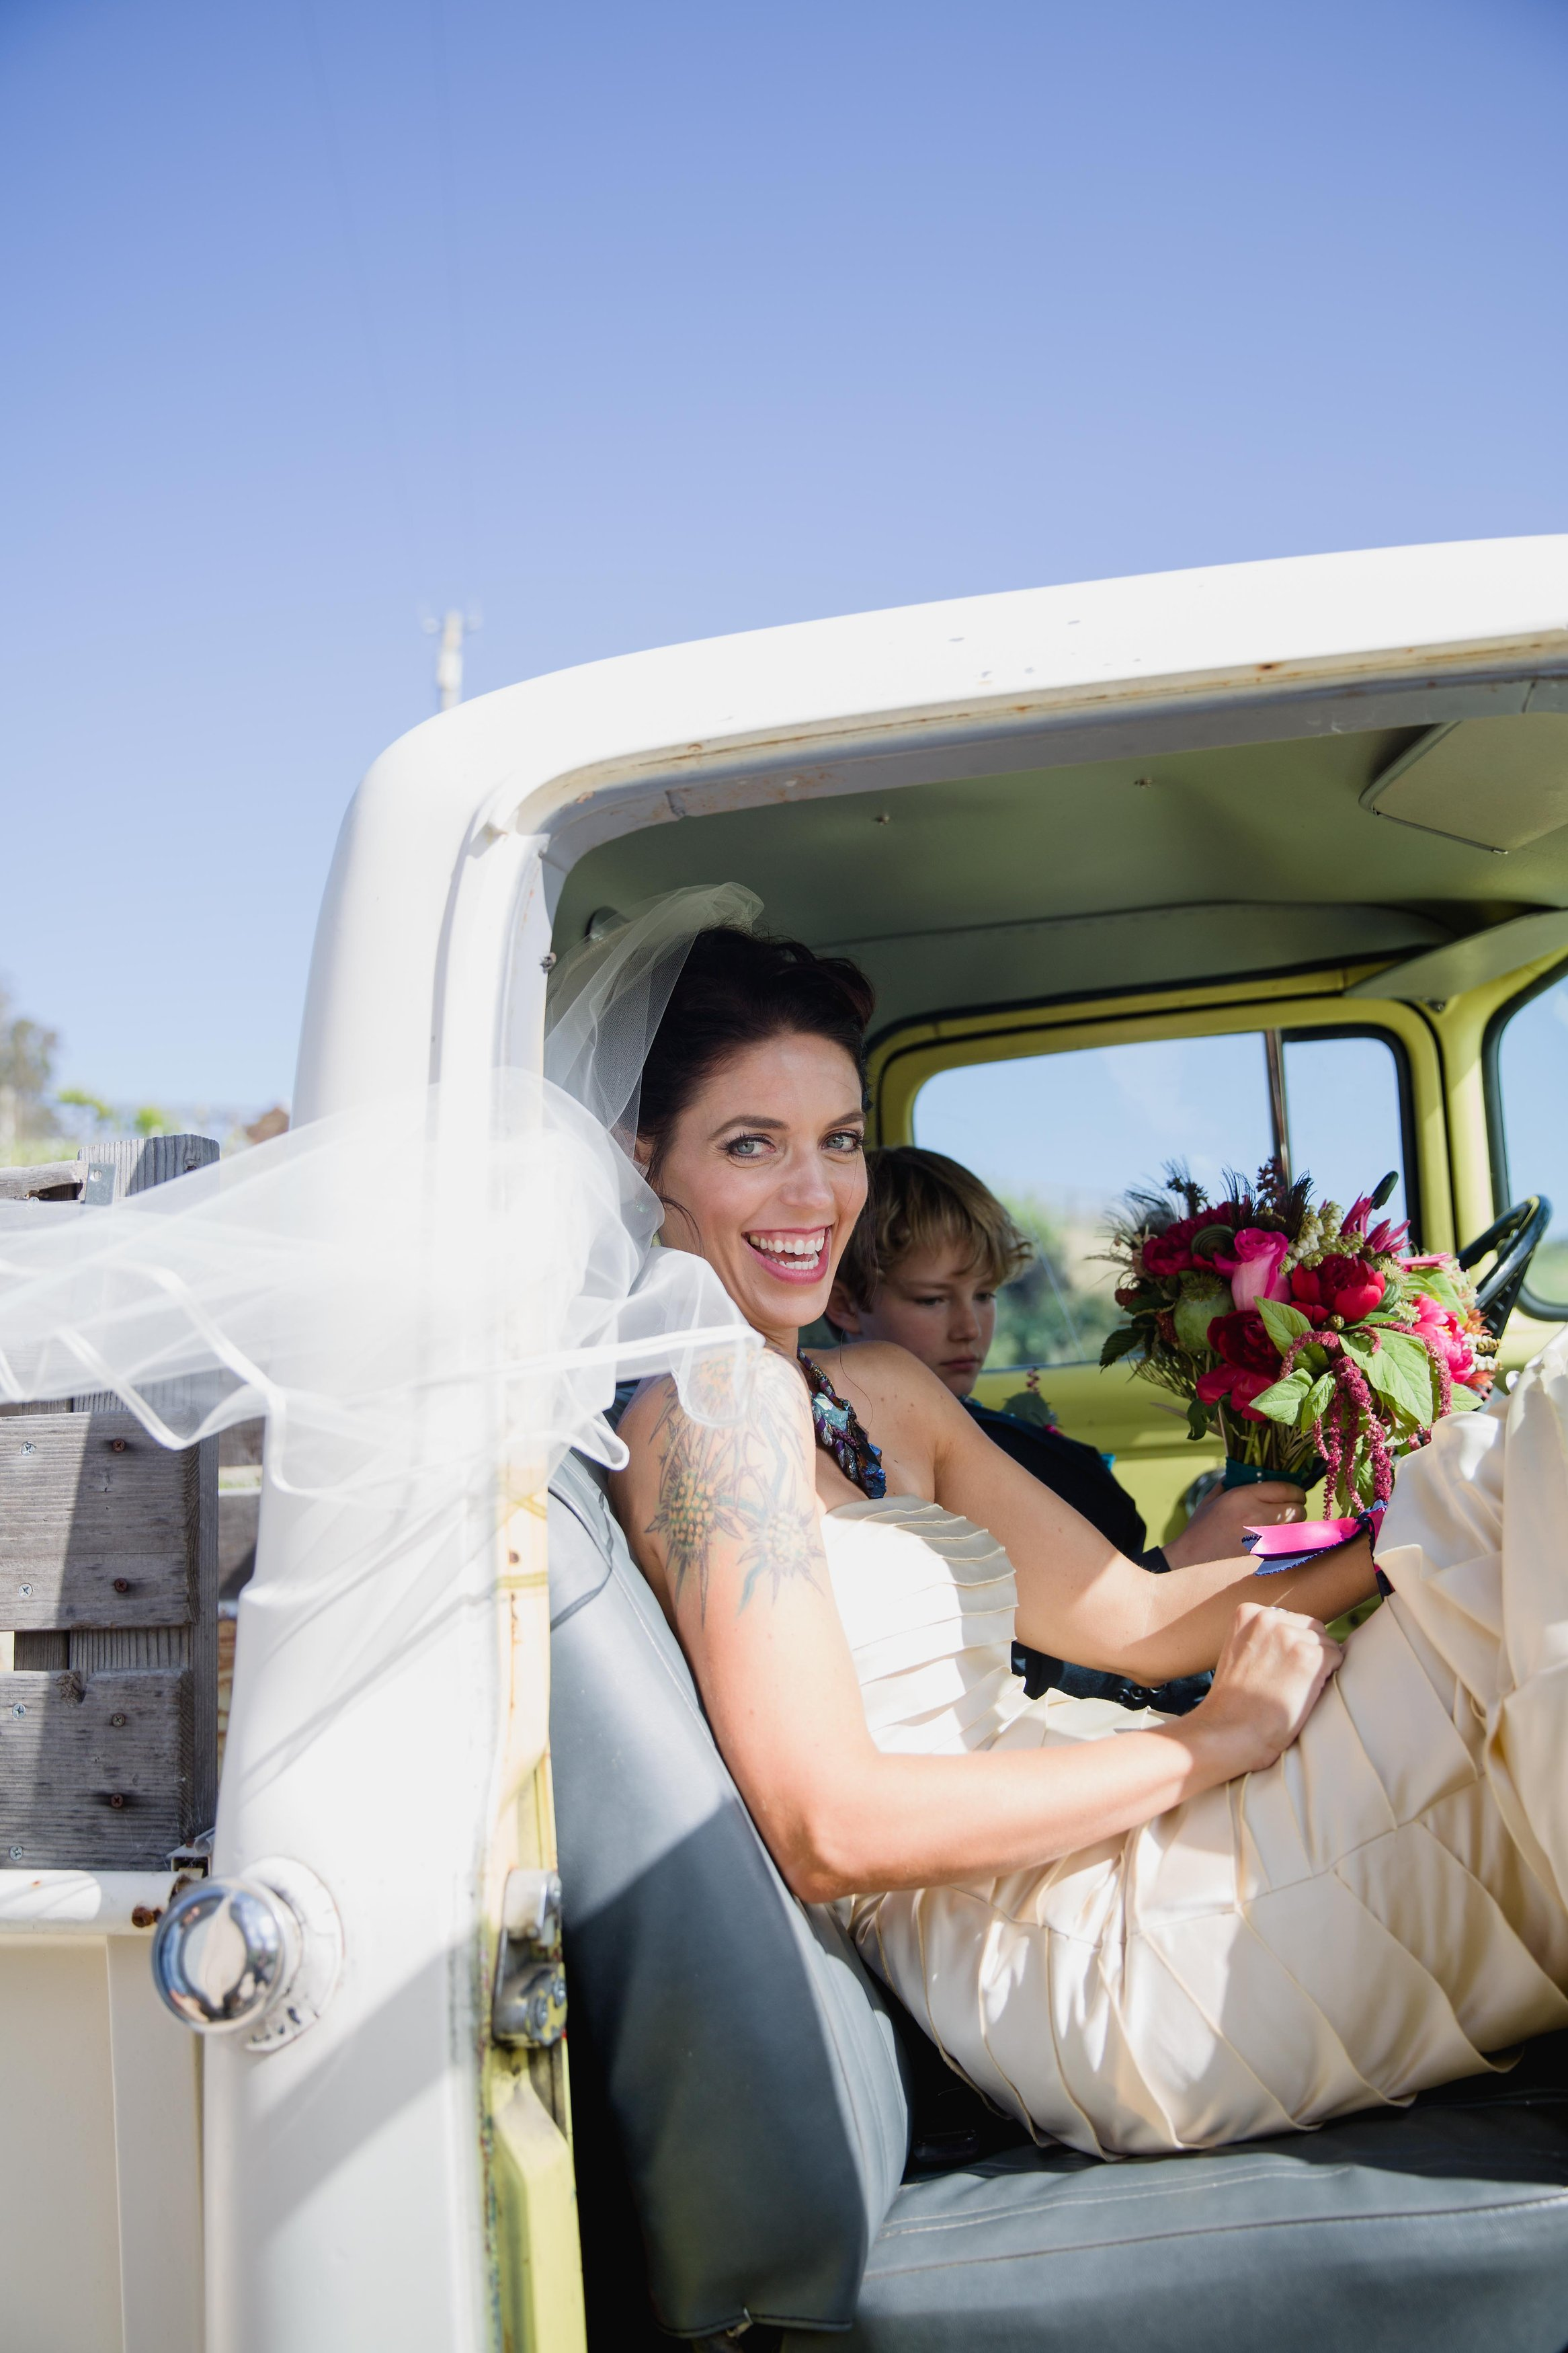 Should you hire a friend to photograph your wedding? Photo by  Erin Little Photography